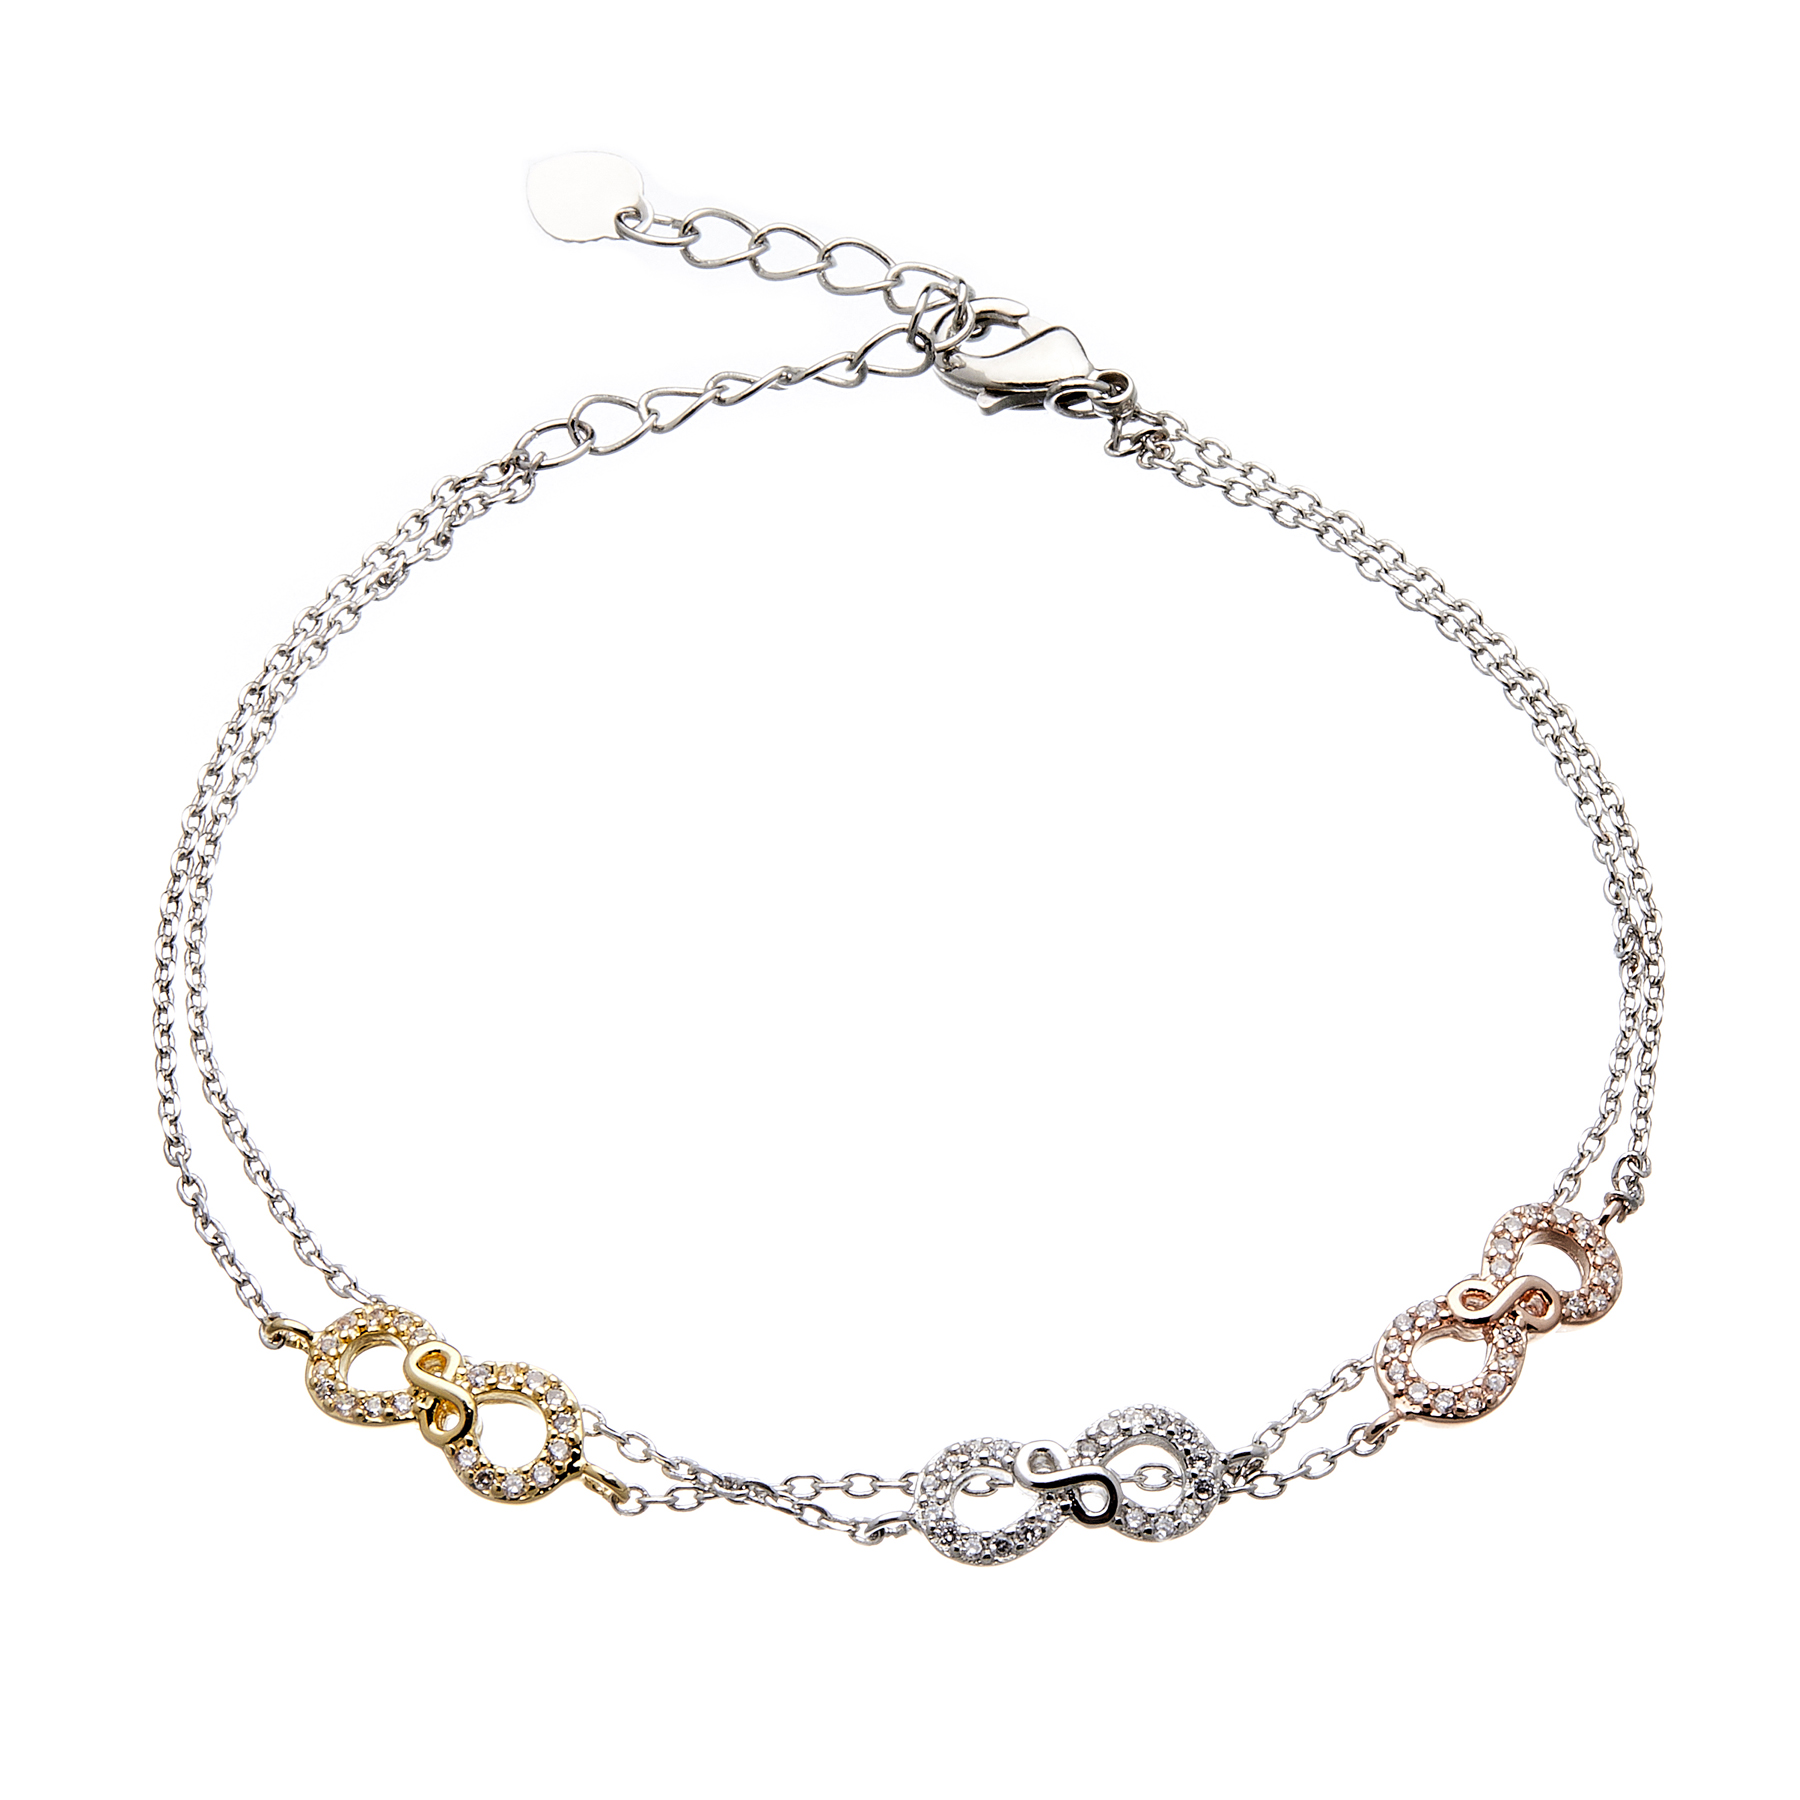 Infinity Friendship Bracelet - fine double chain with Cubic Zirconia crystals - Nayma